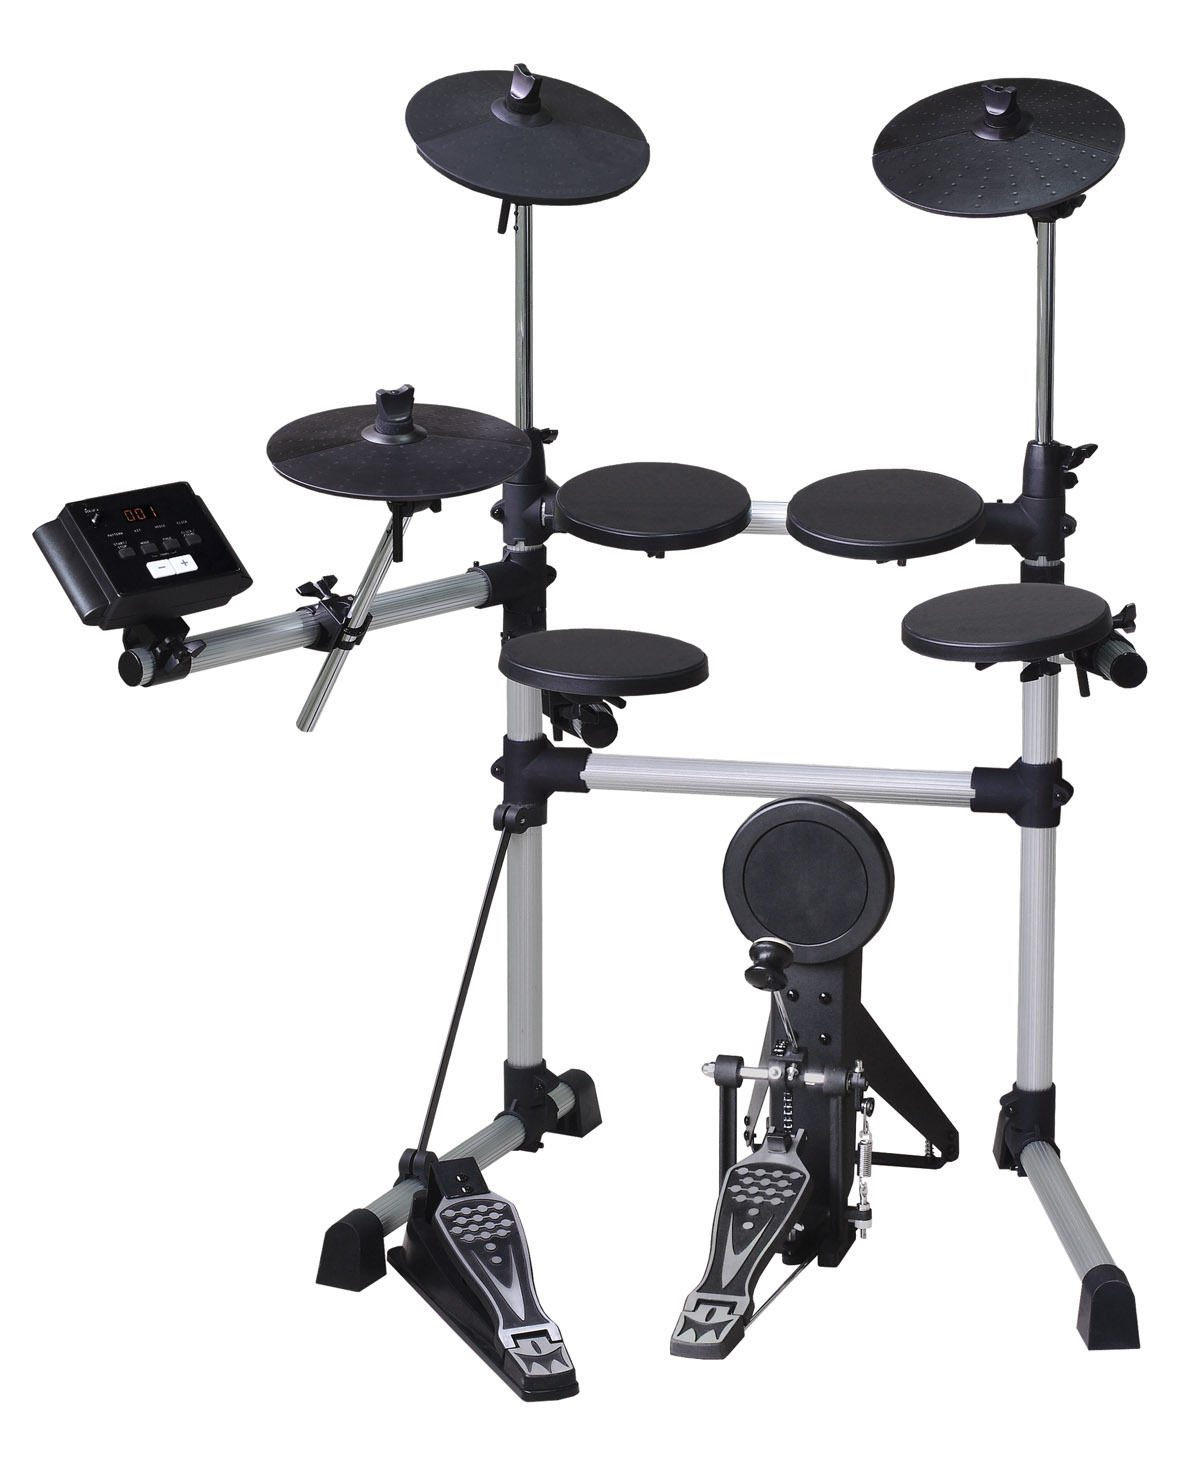 CB700 ELECTRONIC DIGITAL DRUM KIT BRAND NEW DRUMKIT with DRUM STICKS + WARRANTY